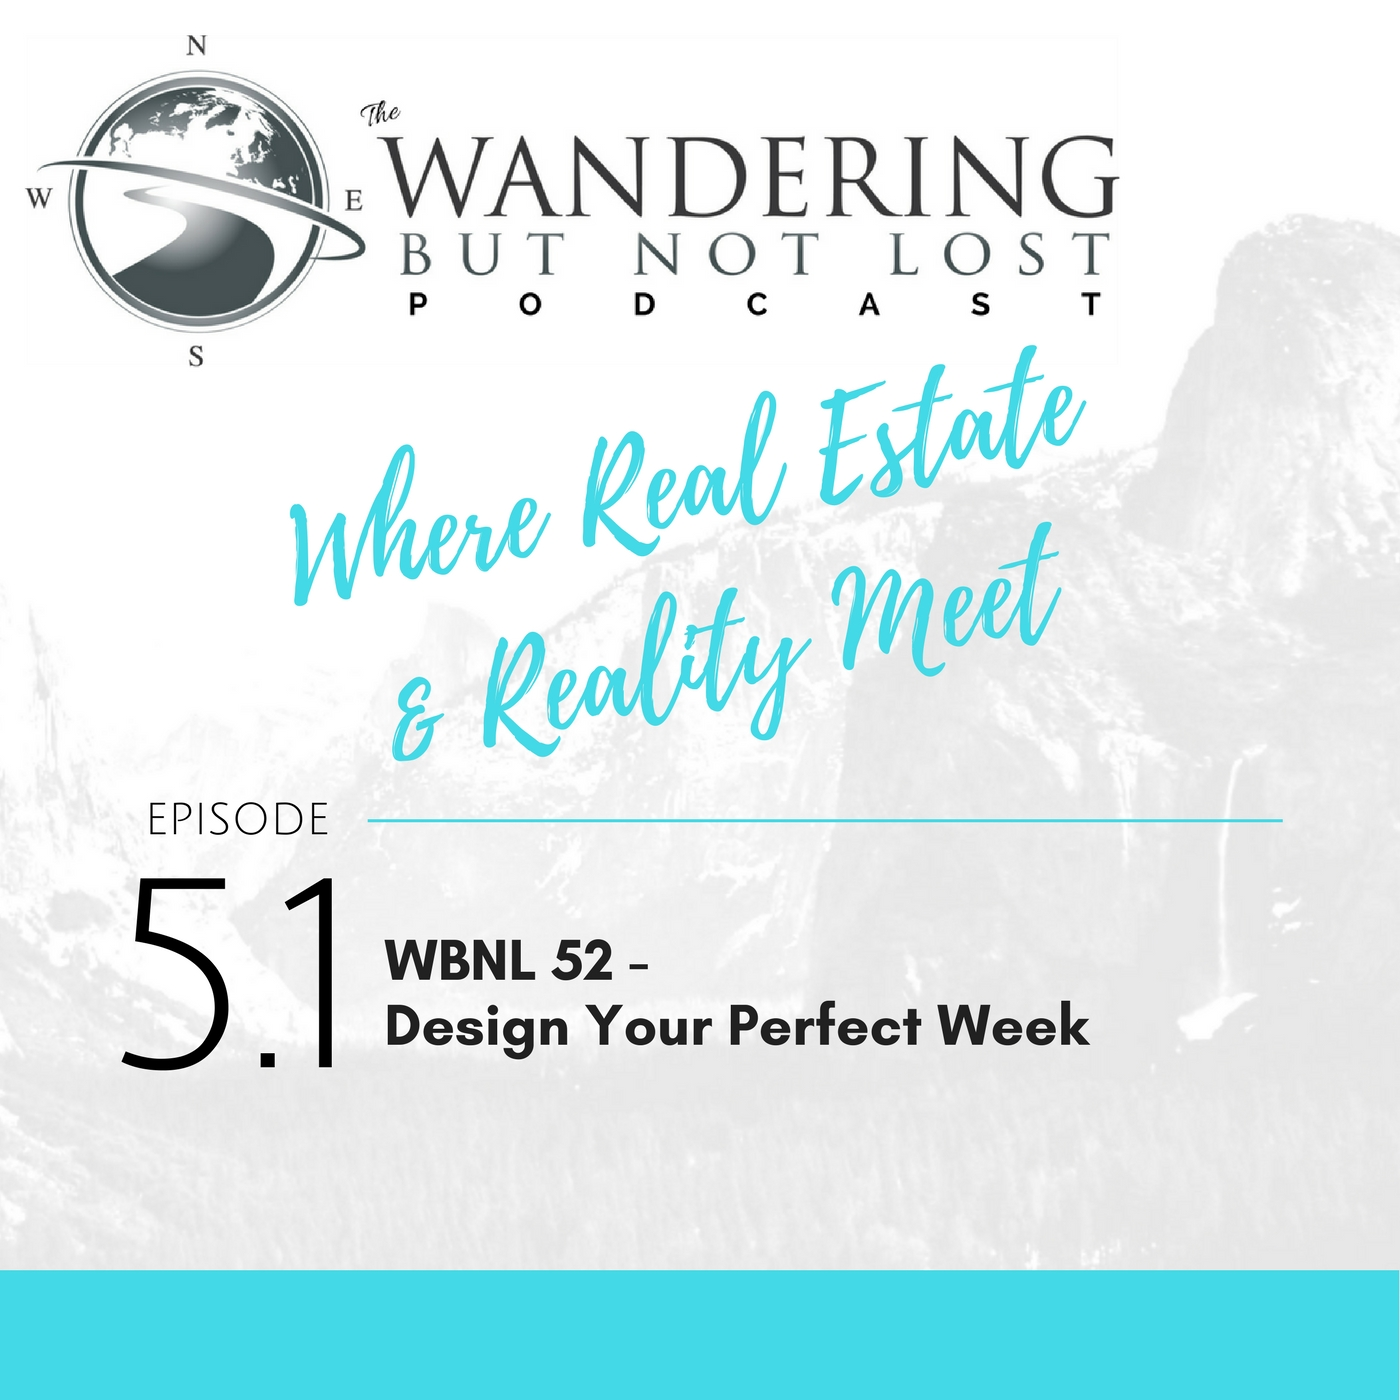 Artwork for Episode 5.1: WBNL 52  – Design & Follow Your Perfect Week